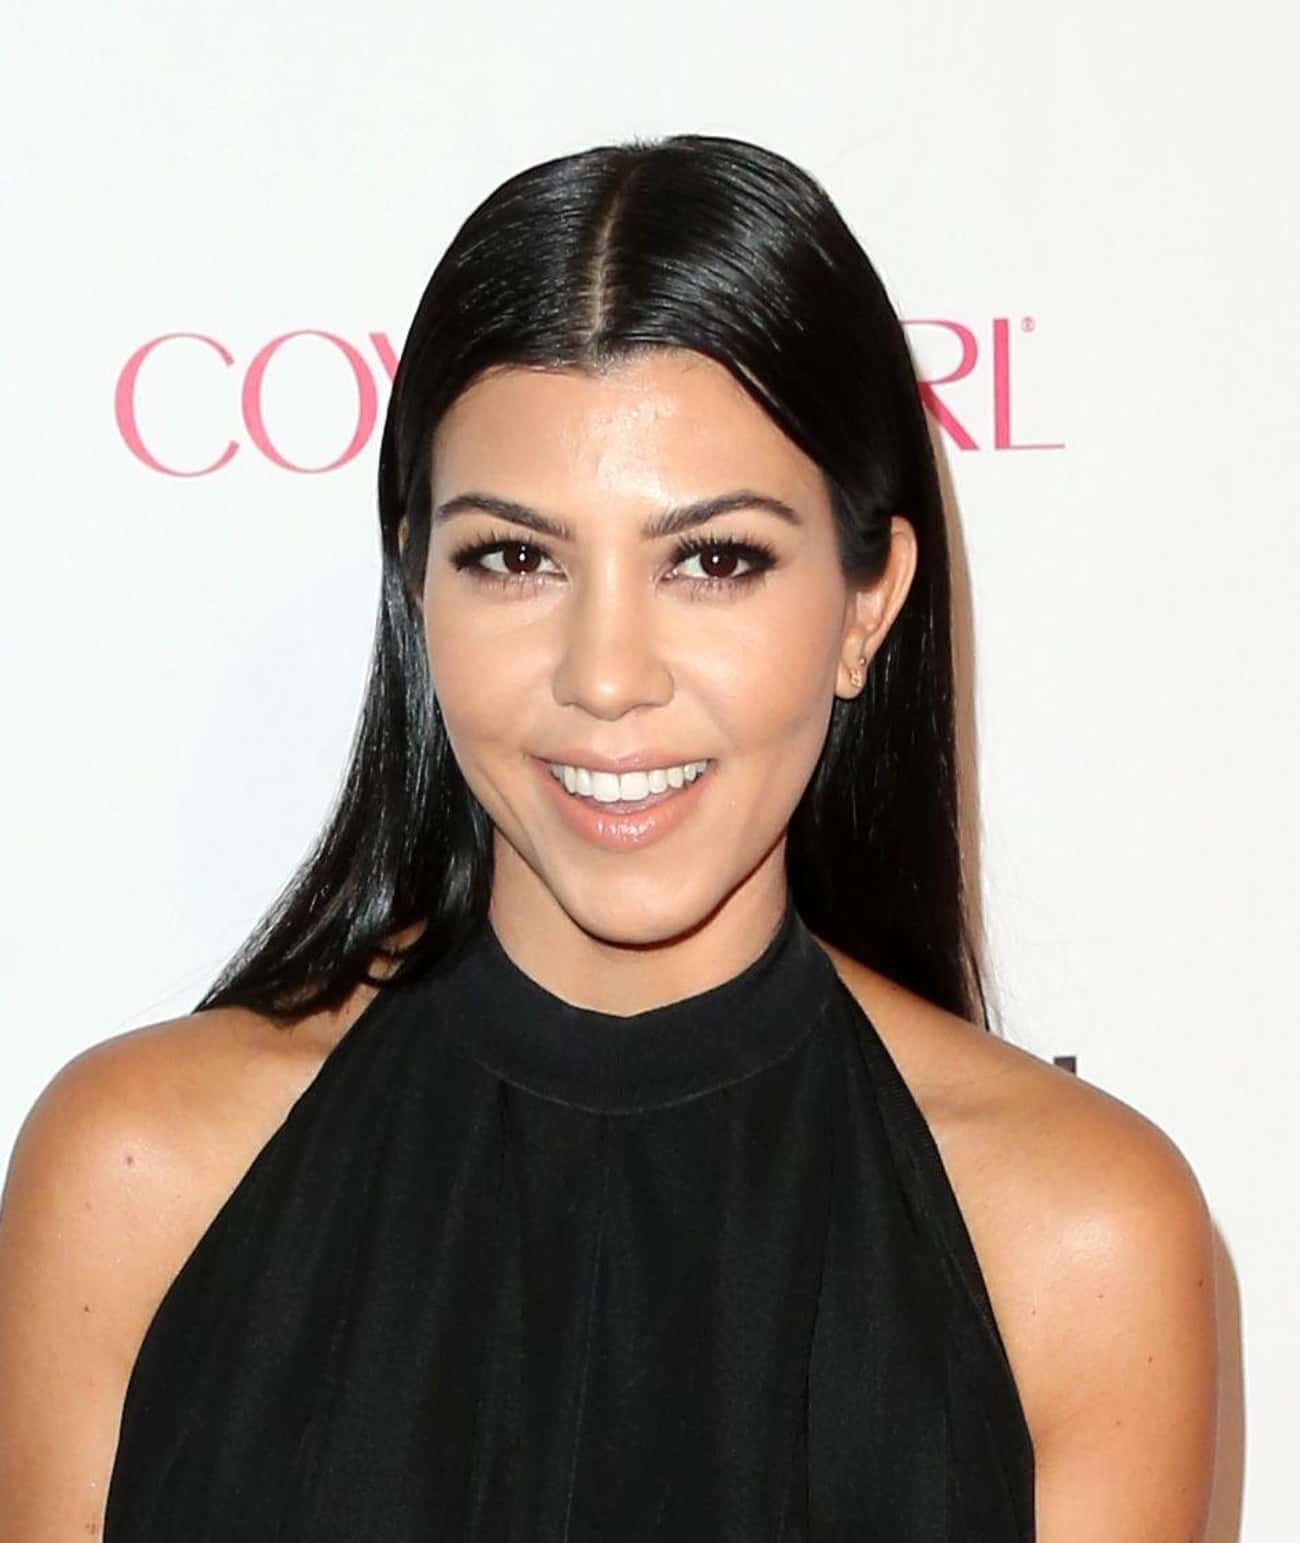 Kourtney Kardashian is listed (or ranked) 2 on the list Famous Marymount High School Alumni